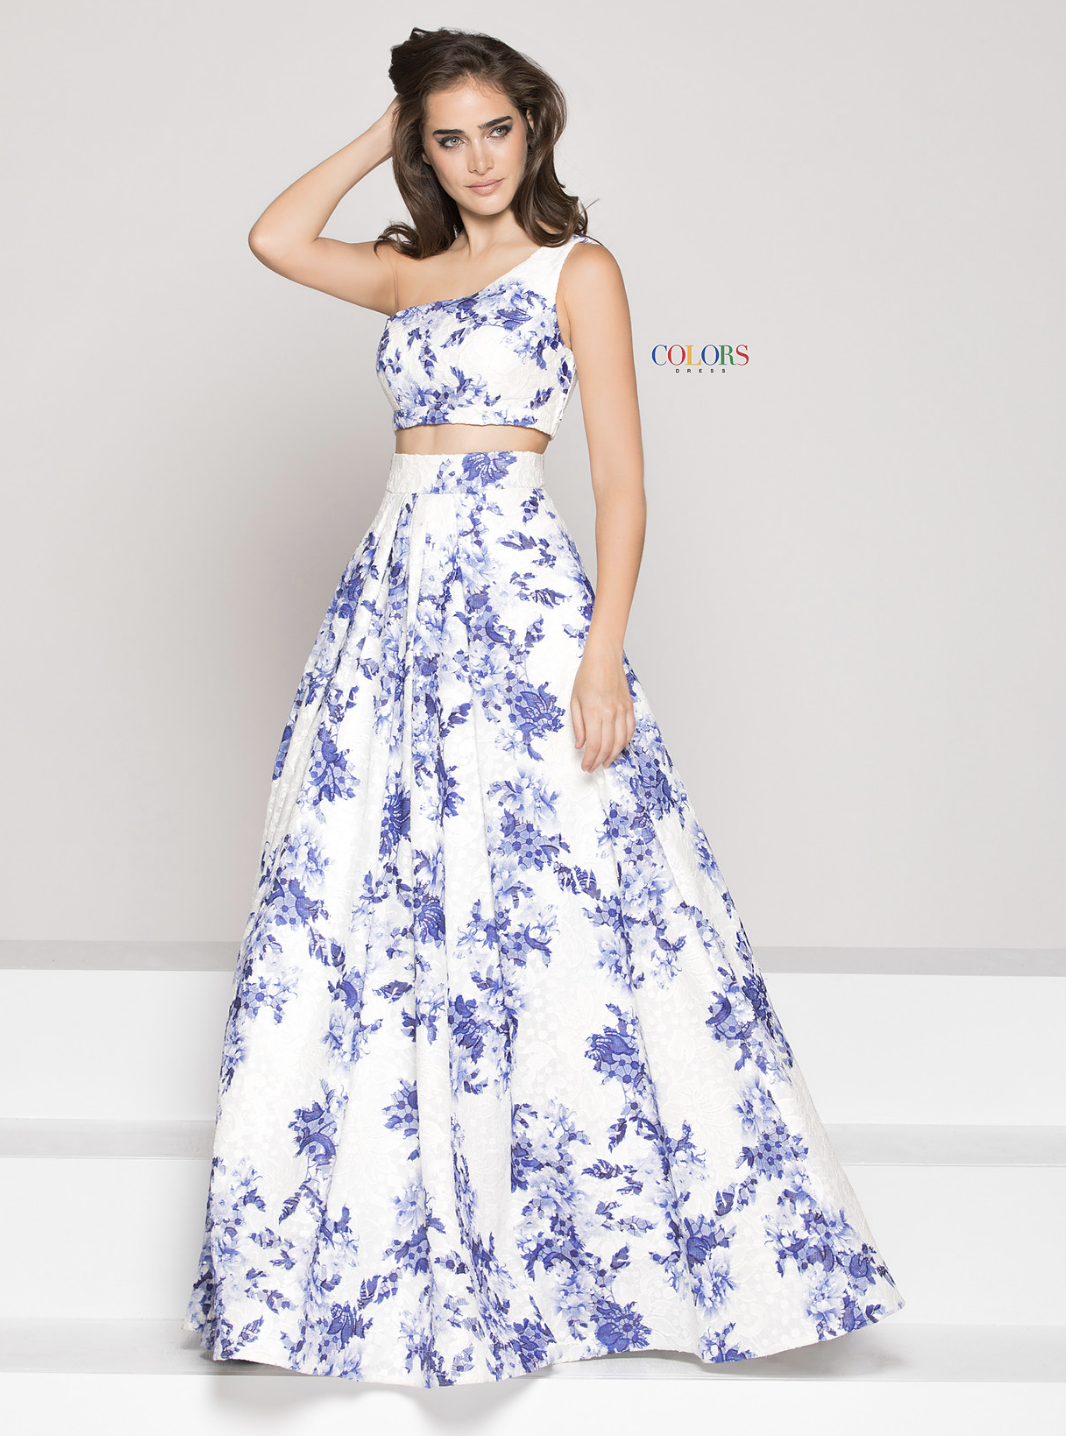 48 2 Piece Embroid Mesh Dress Style 1836 Floral Evening Dresses Evening Dresses Colorful Dresses [ 1436 x 1066 Pixel ]